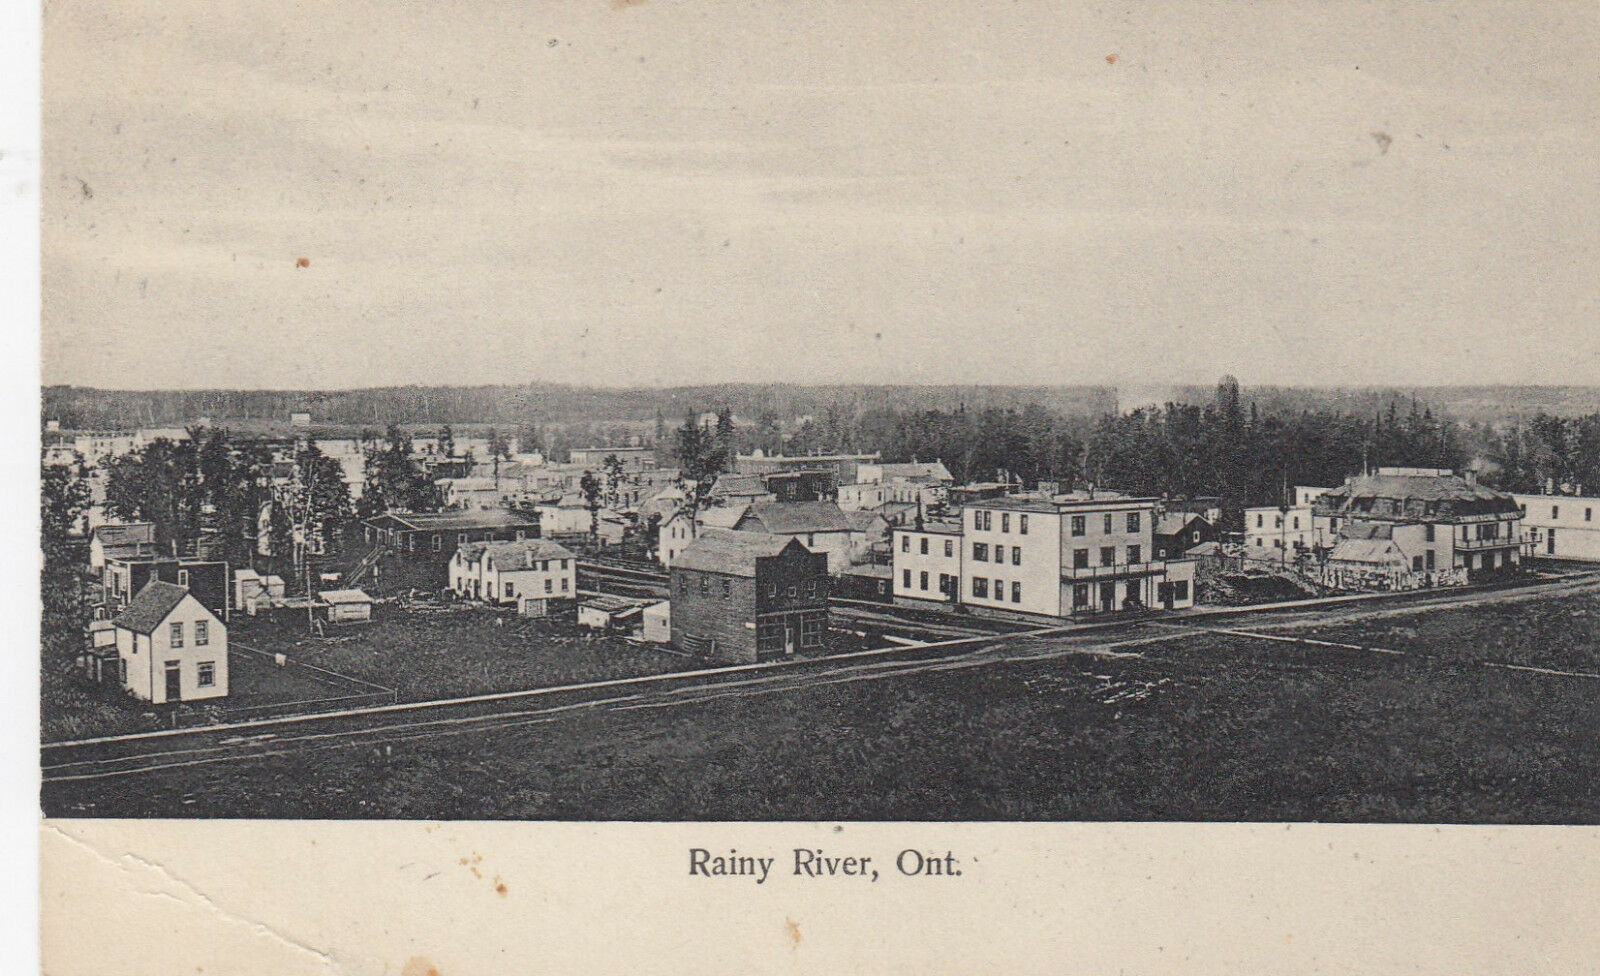 A postcard featuring an aerial view of Rainy River, Ontario (c. 1900-1910).